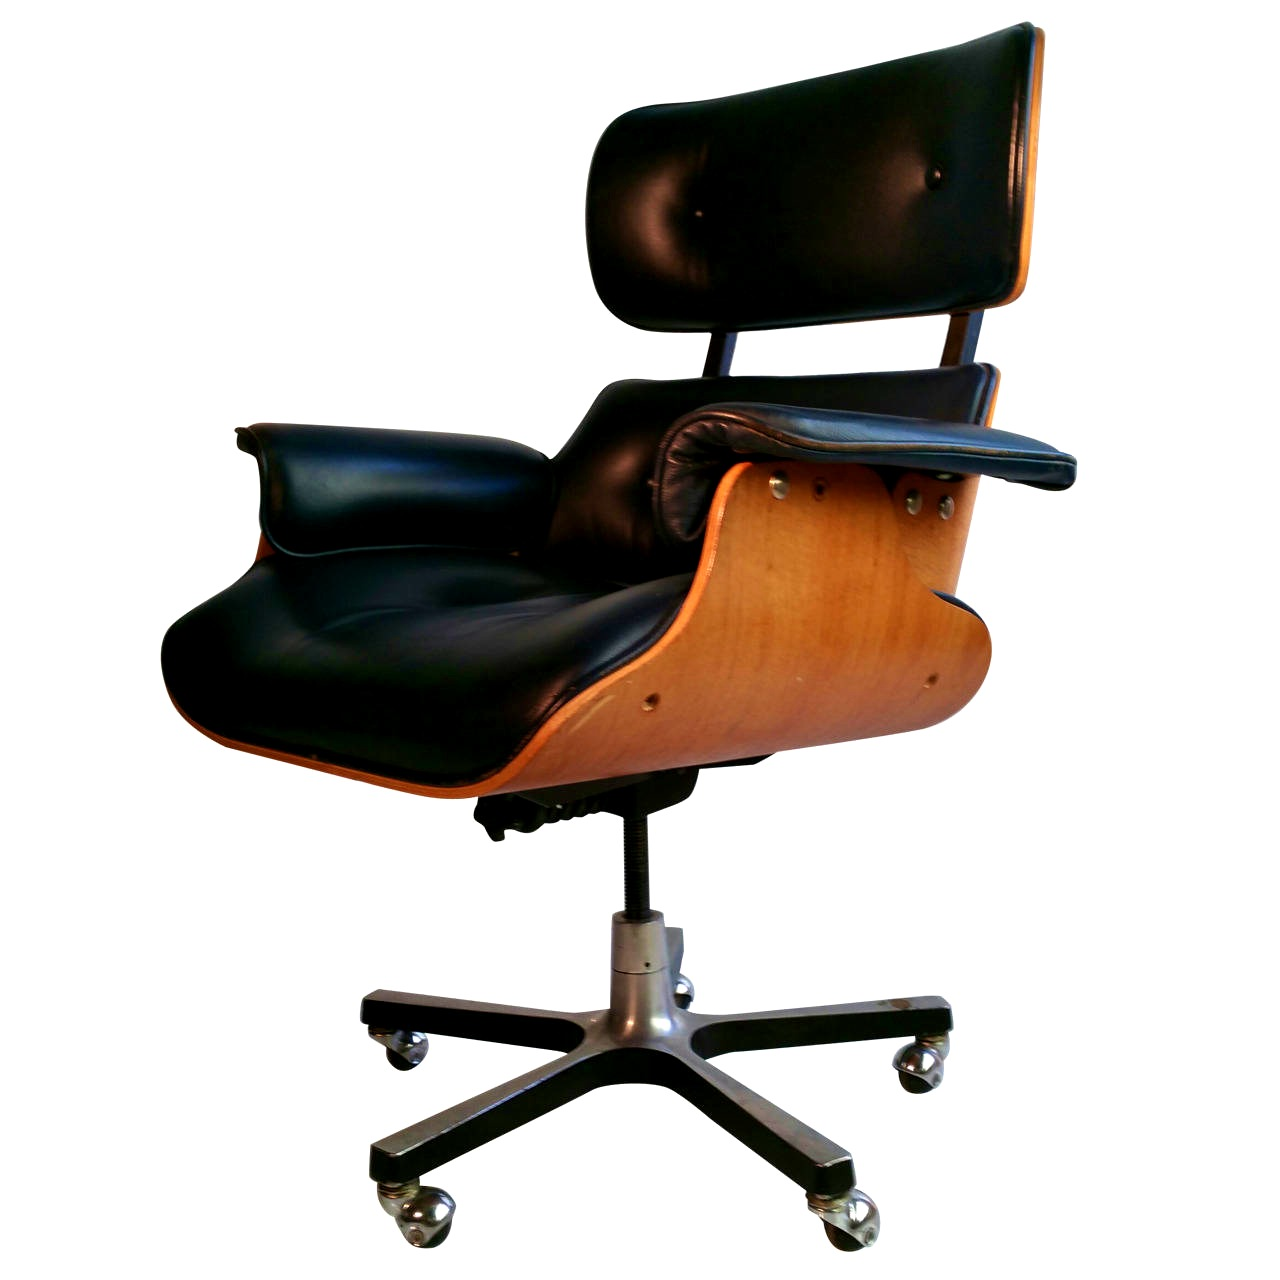 eames chair knock off herman miller knock off fabulous herman miller lounge chair eames chair knock off l bbbba